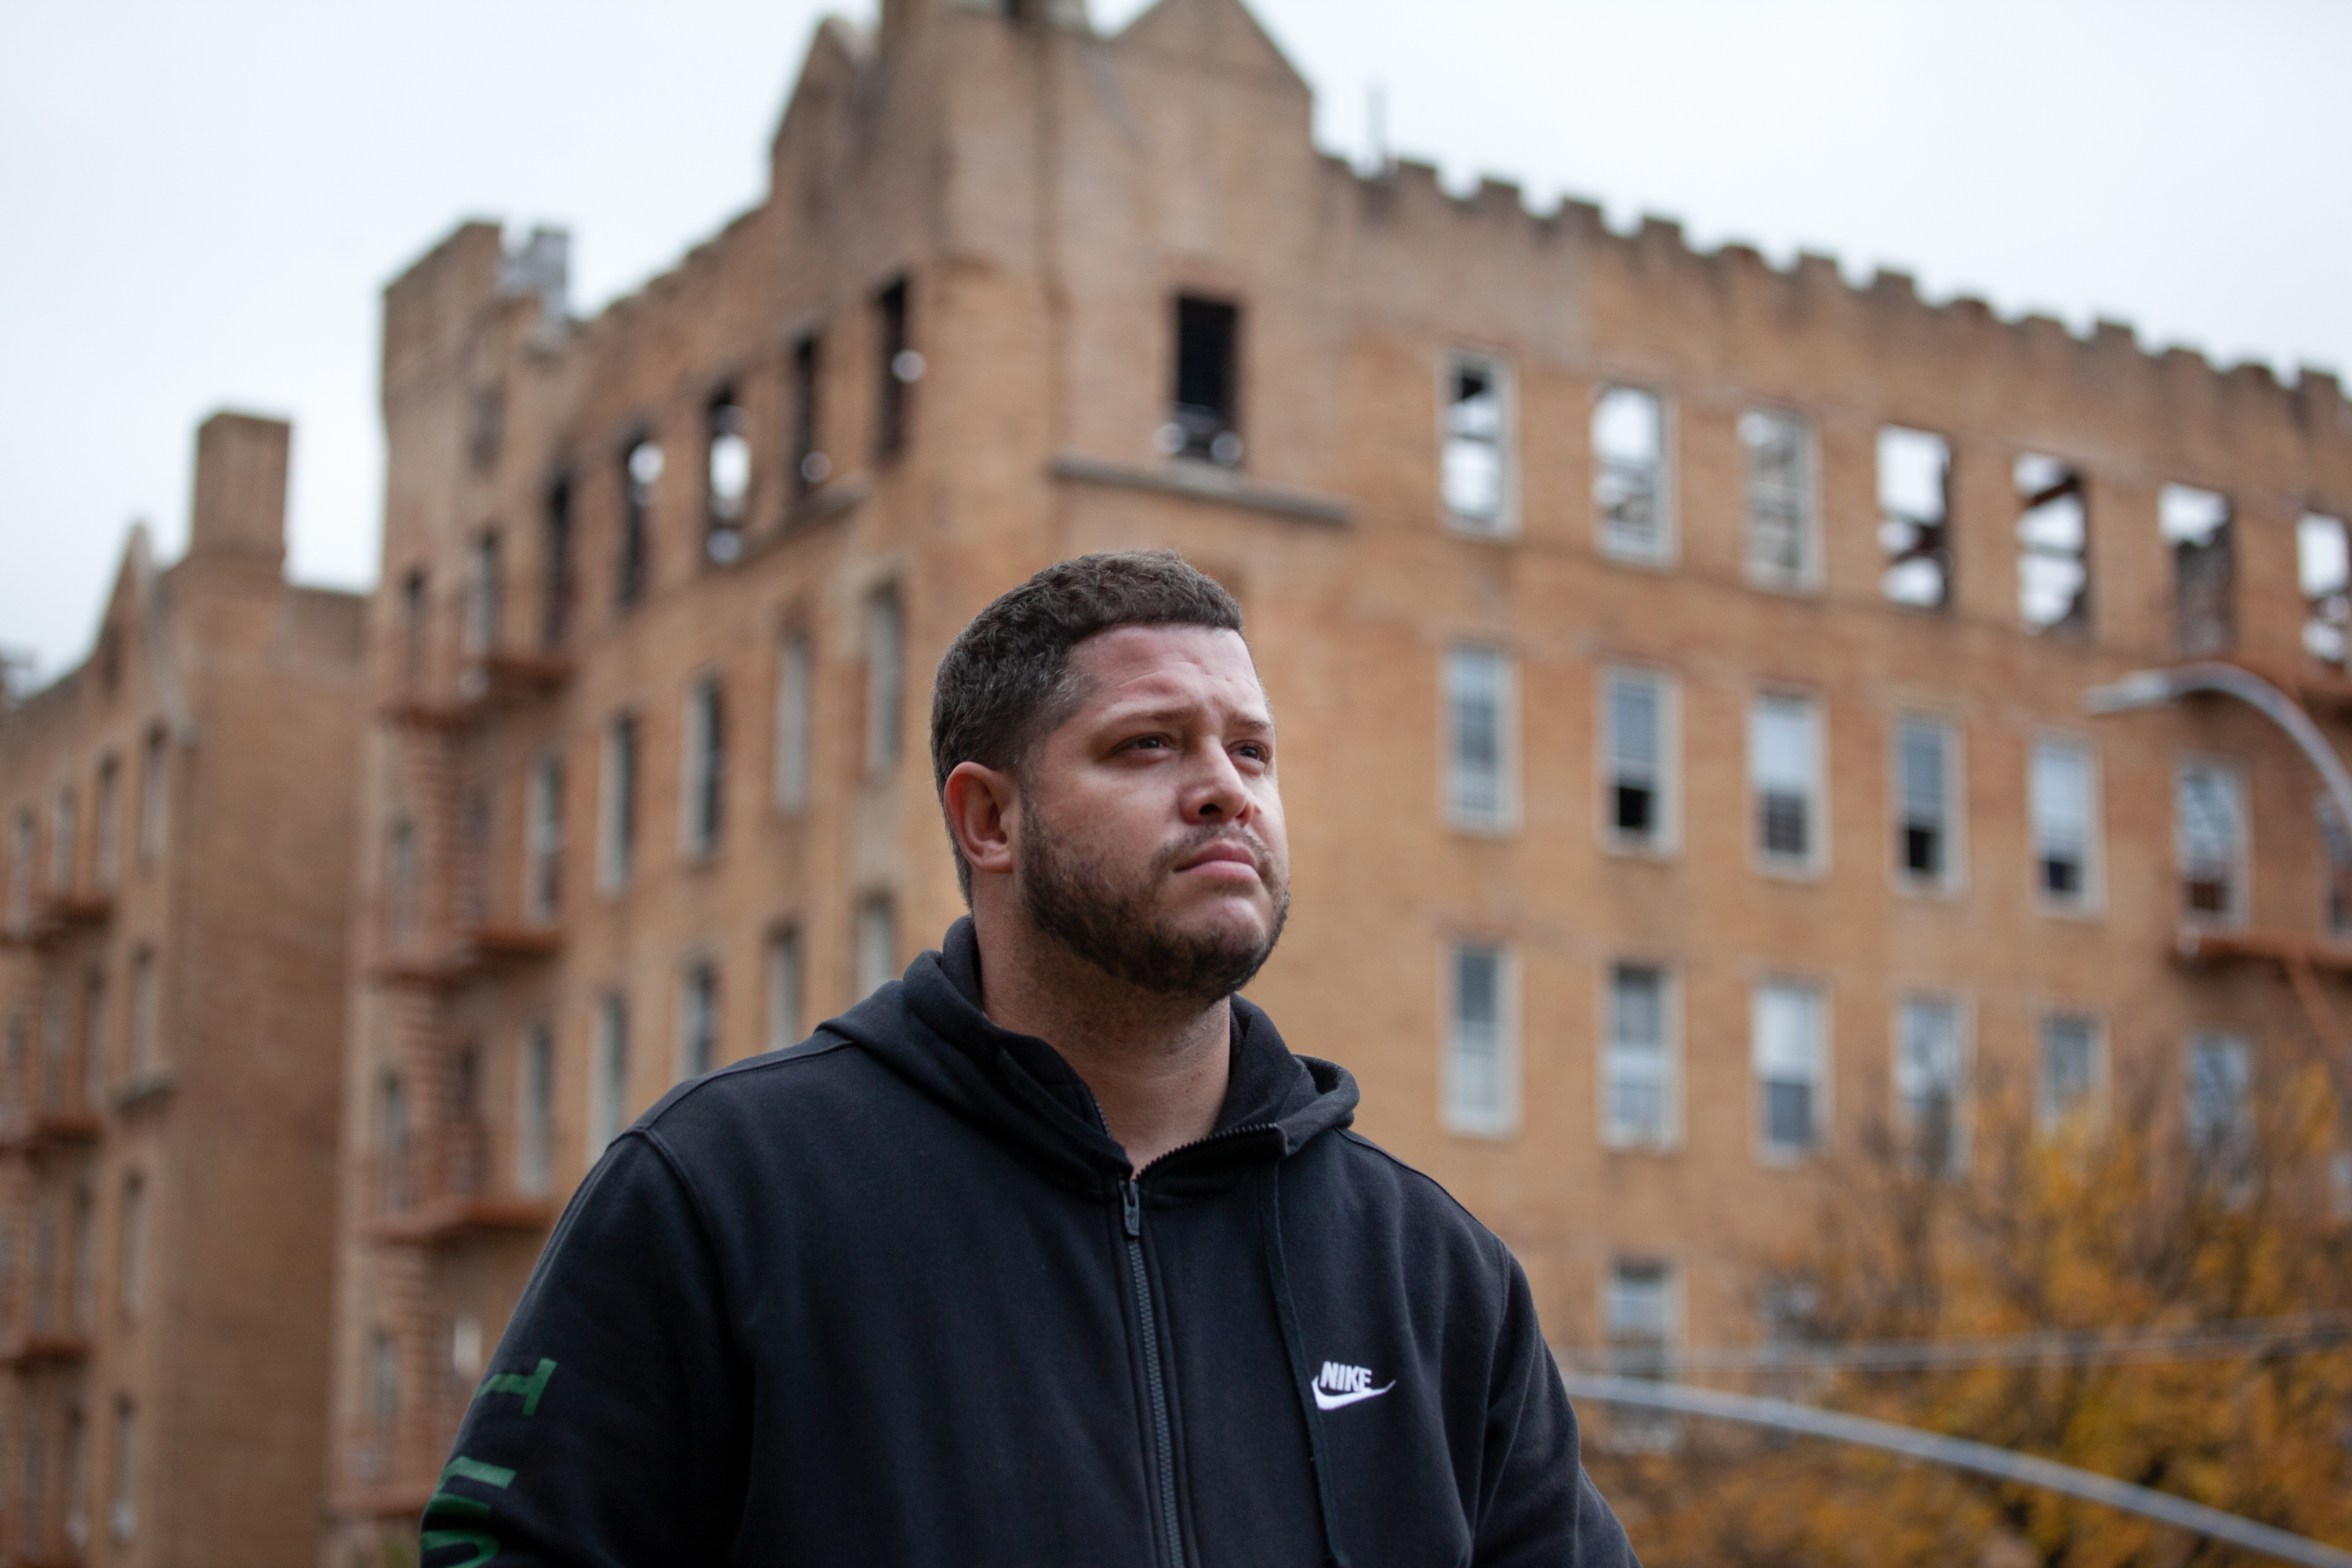 David Marrero struggled to find a home for ailing mother after they were forced out of their Sunset Park home when their building was destroyed in a fire.